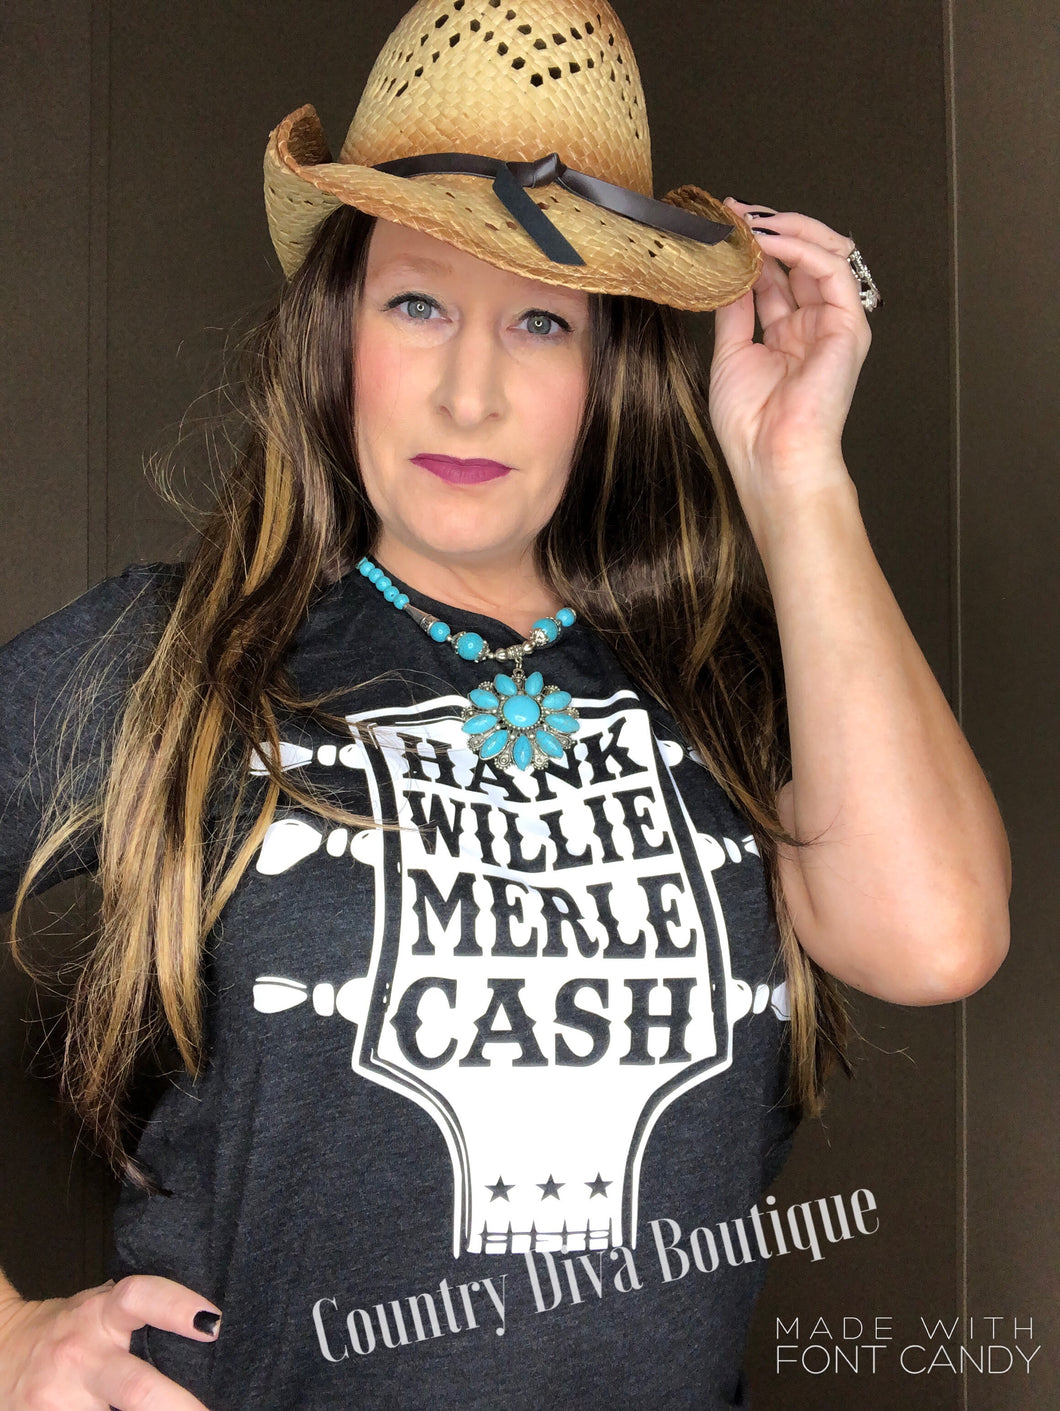 Hank Willie Cash Waylon Merle  Guitar T Shirt